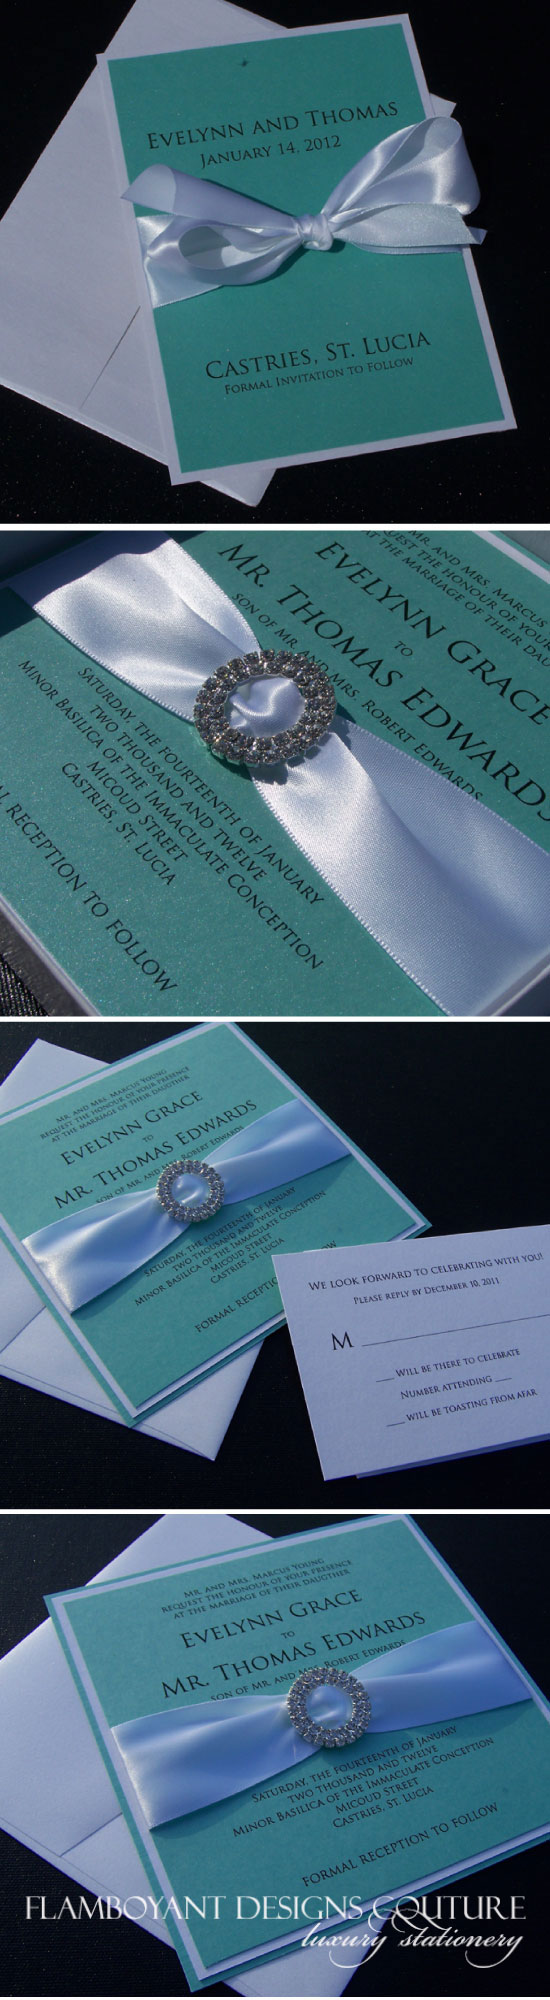 New York Wedding Invitation Designer: Tiffany Blue